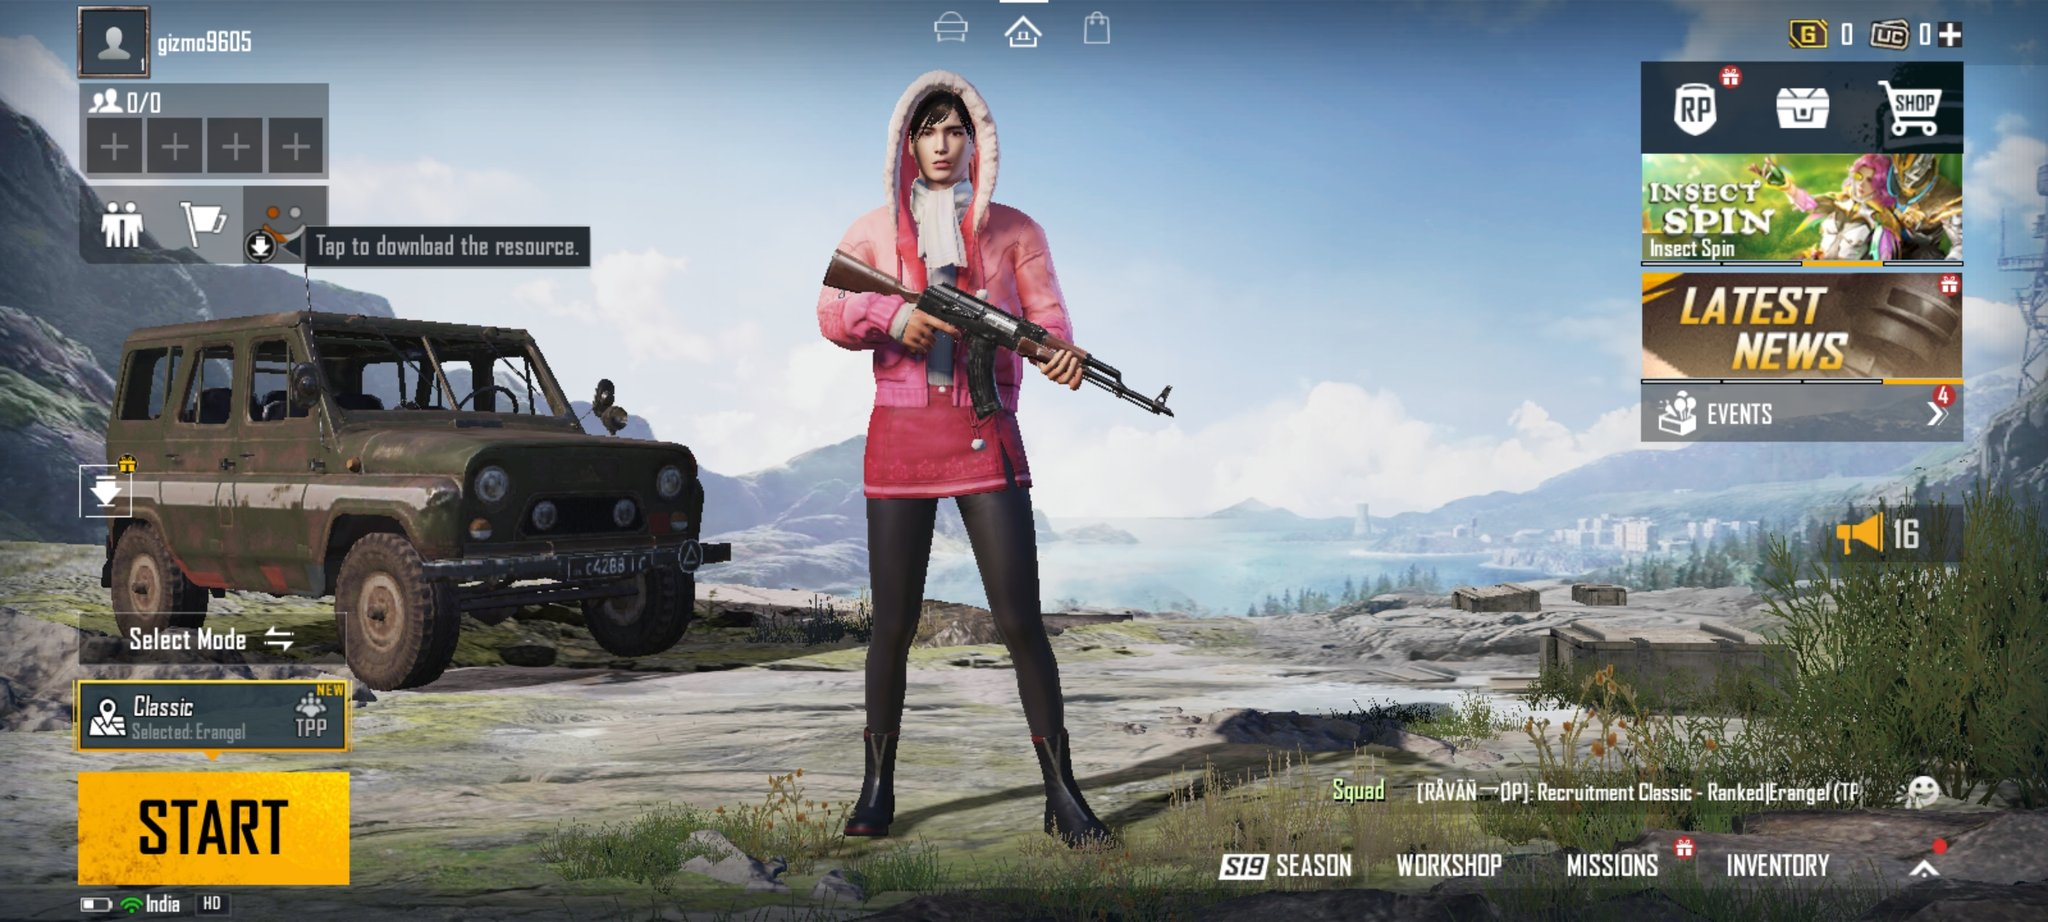 Download Battlegrounds Mobile India APK and OBB File